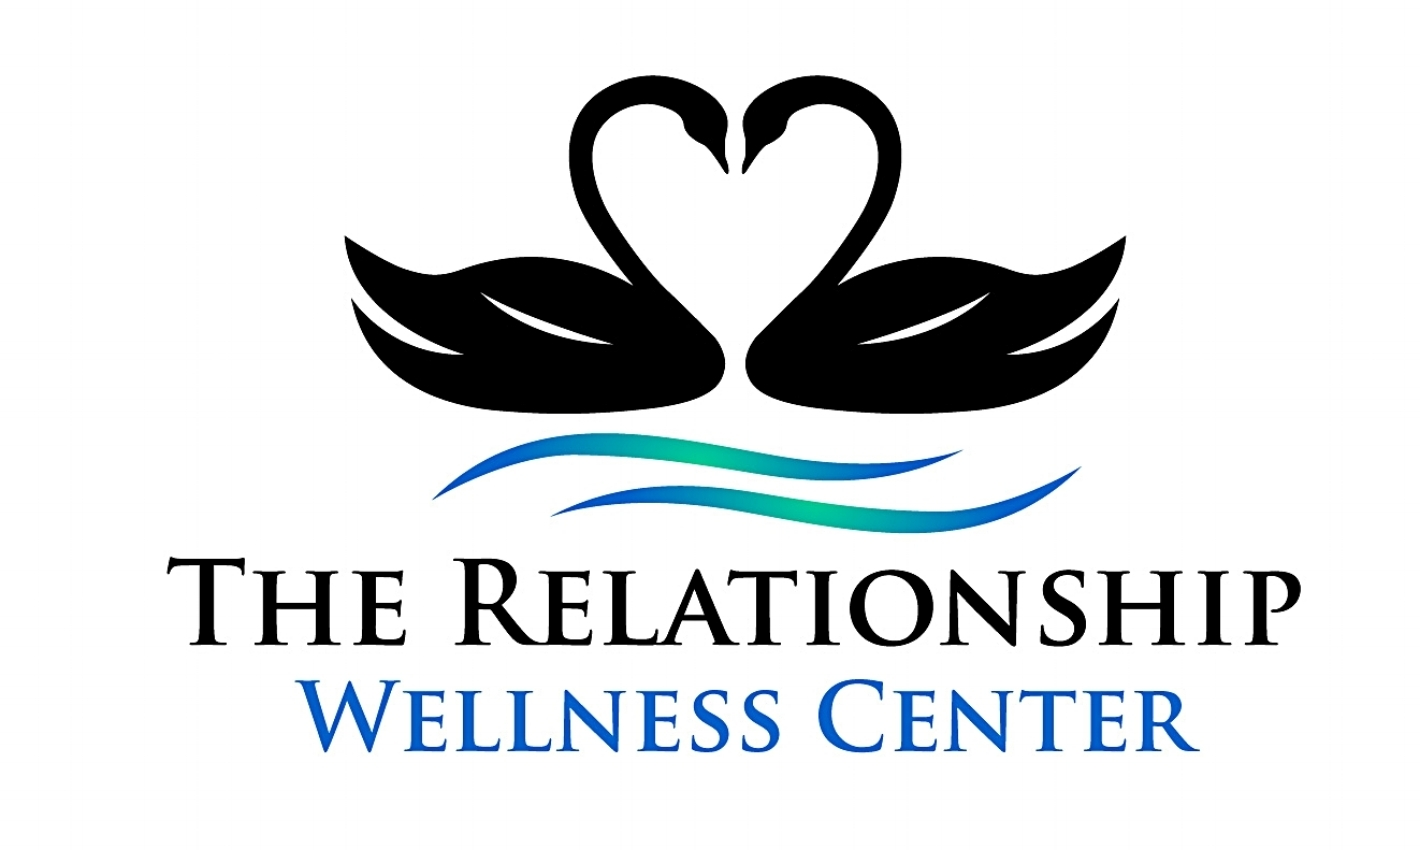 The Relationship Wellness Center